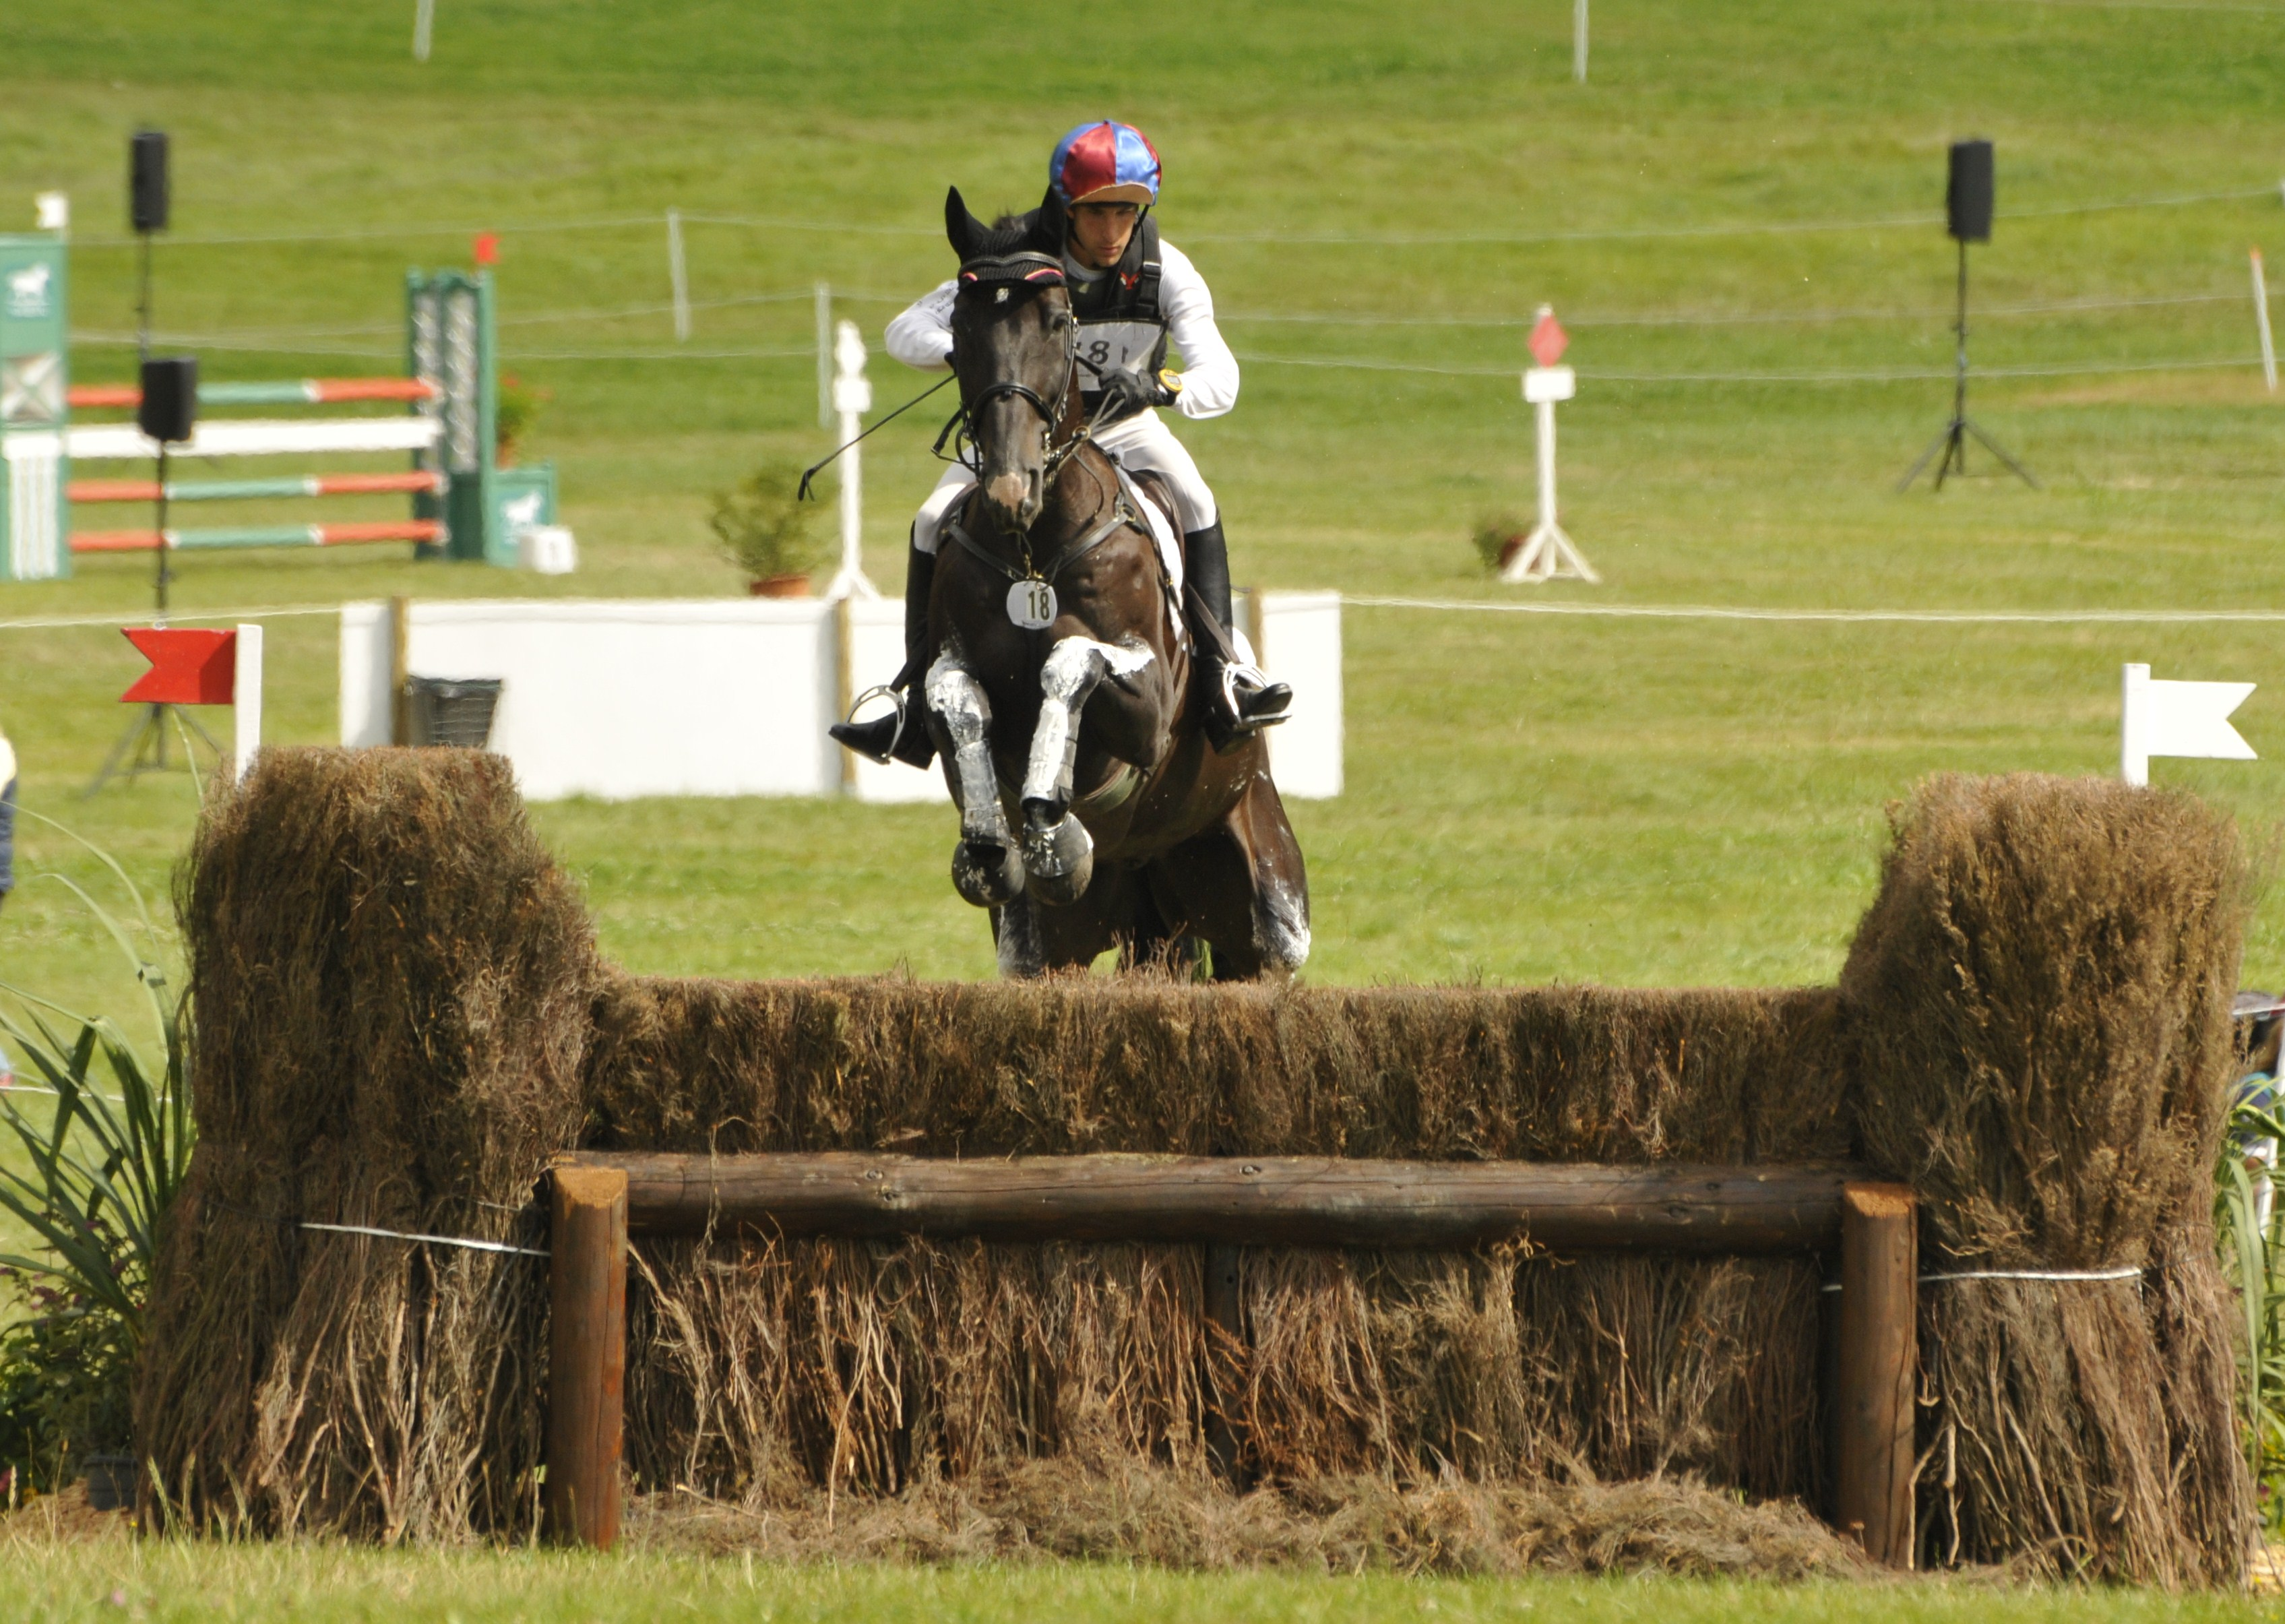 International CIC* Haras du Pin